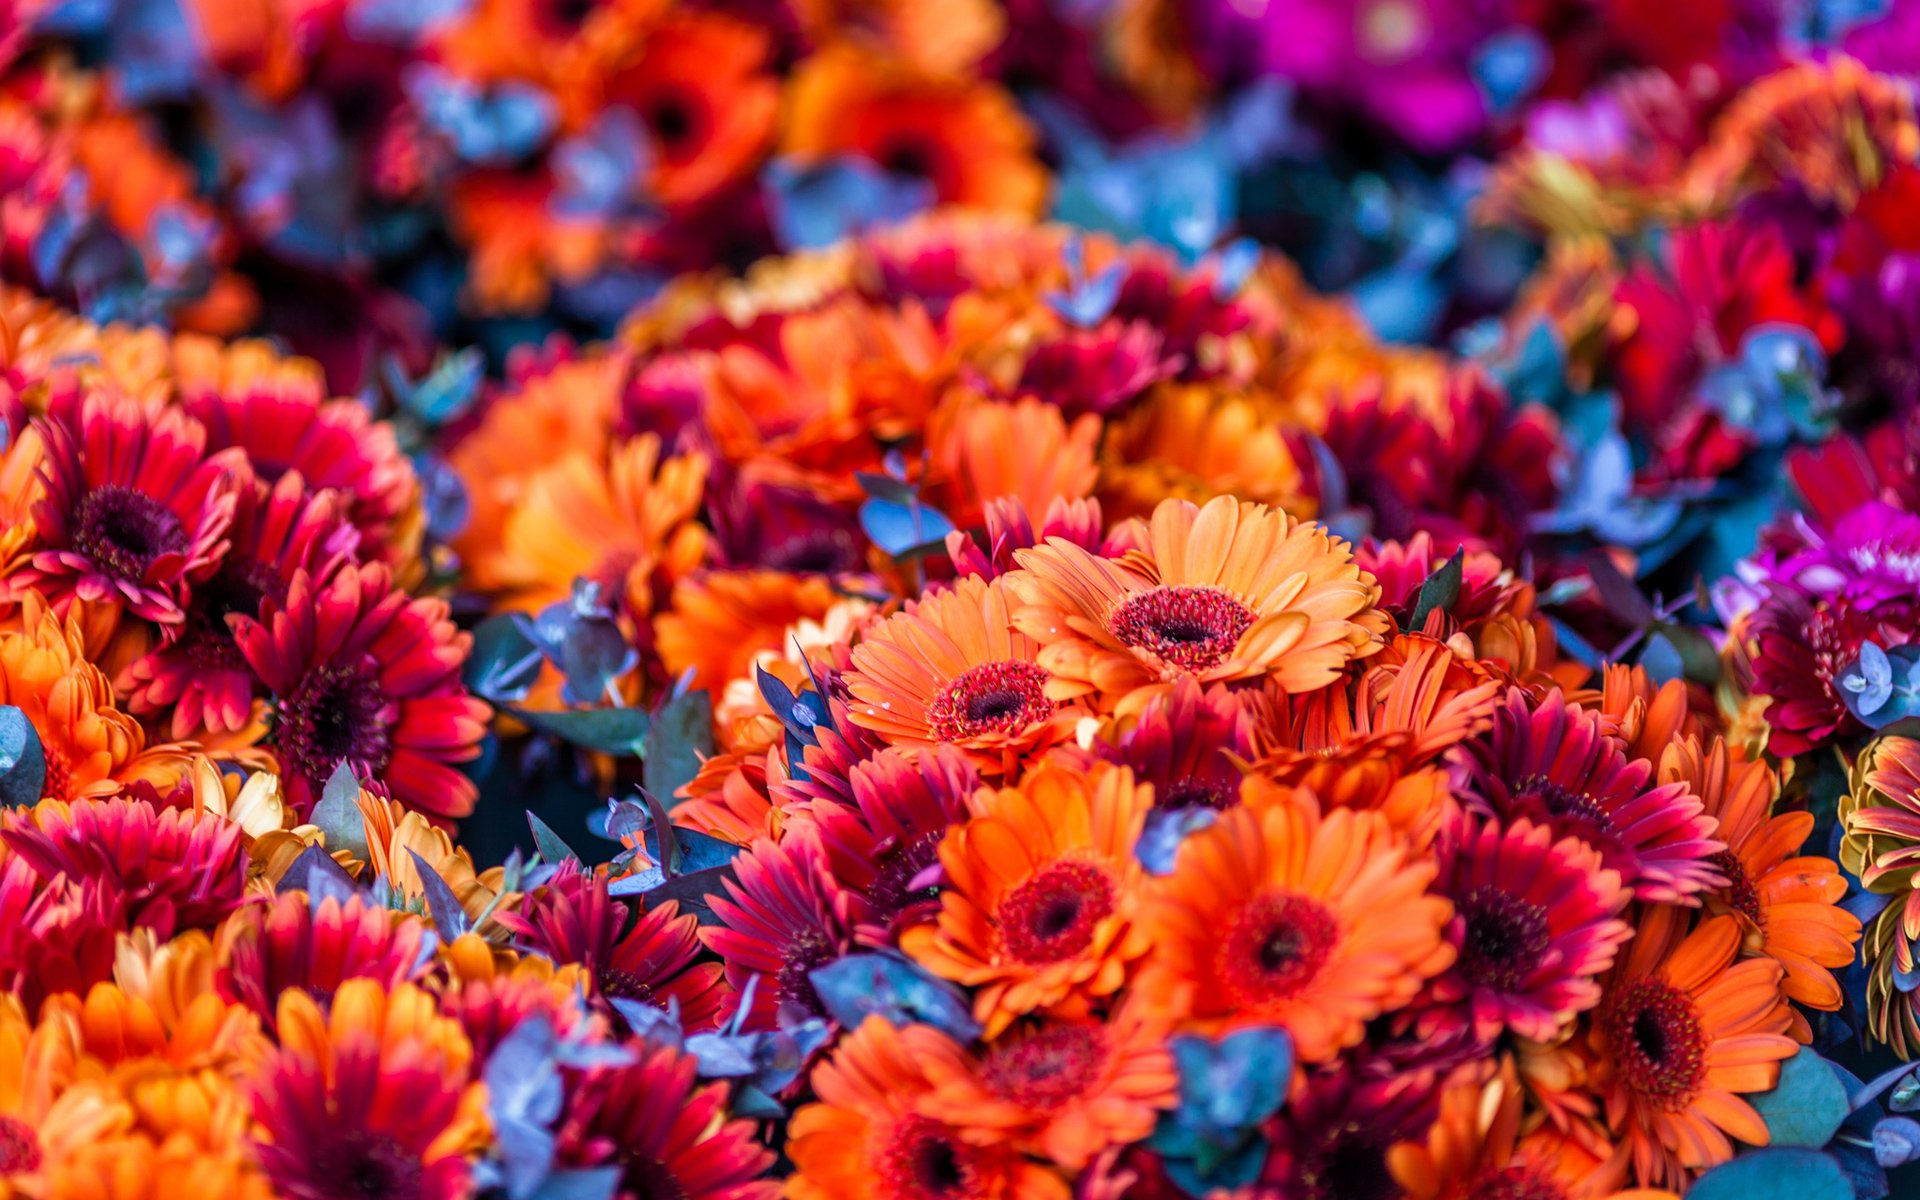 Free Colorful Flower Wallpaper Downloads: Colorful Flowers Wallpaper